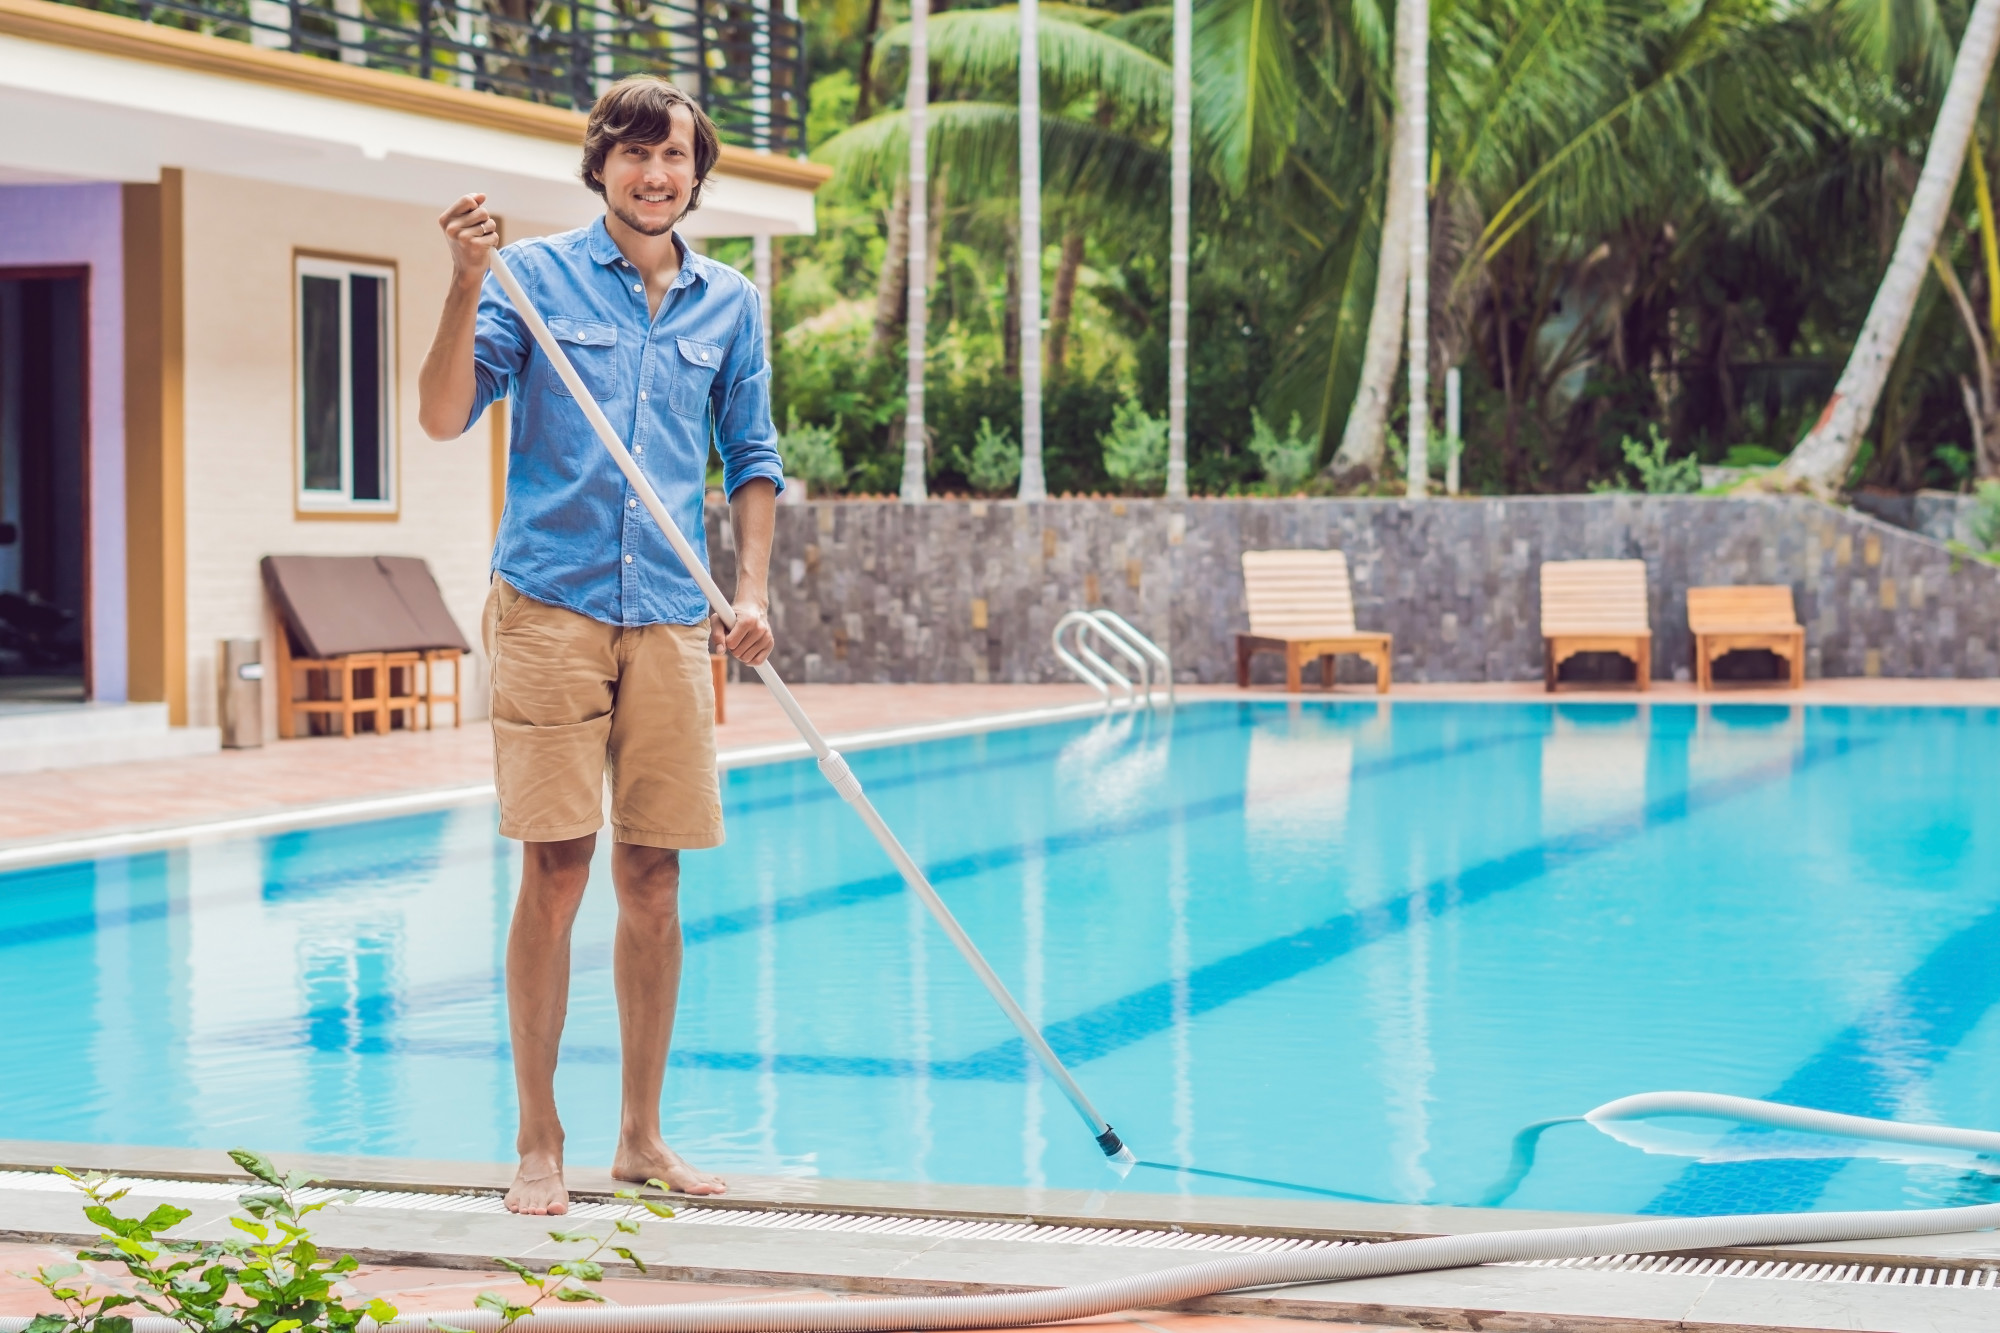 Points to help you choose a good swimming pool contractor